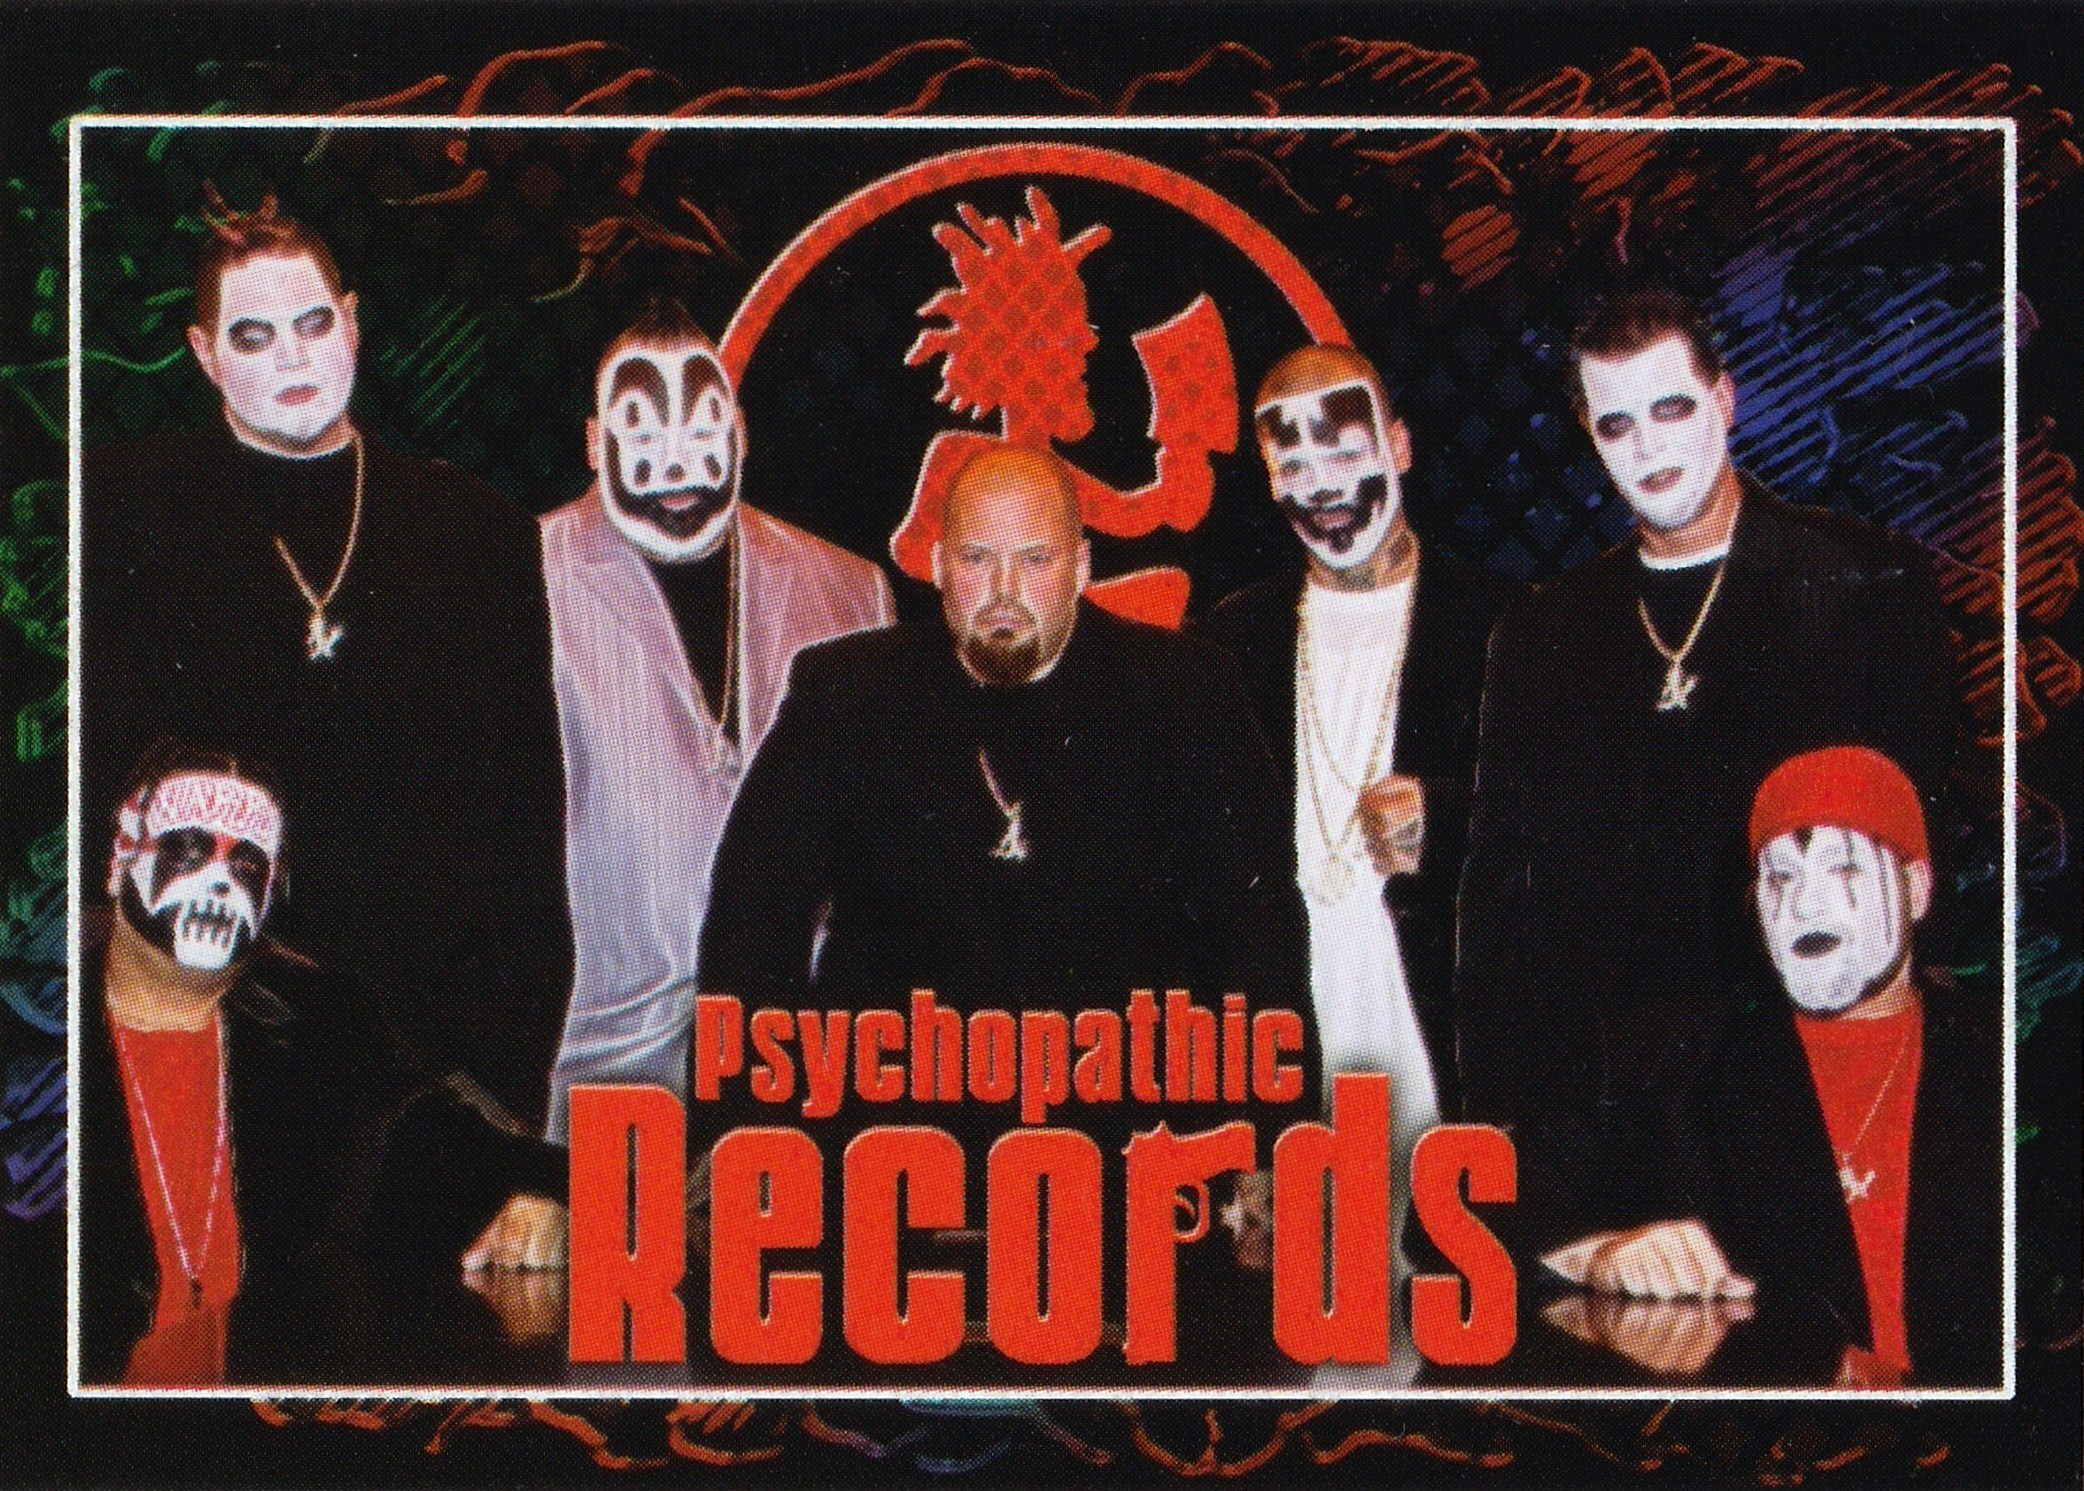 New Psychopathic Trading Cards Partial Set Updated 1024 2084x1491